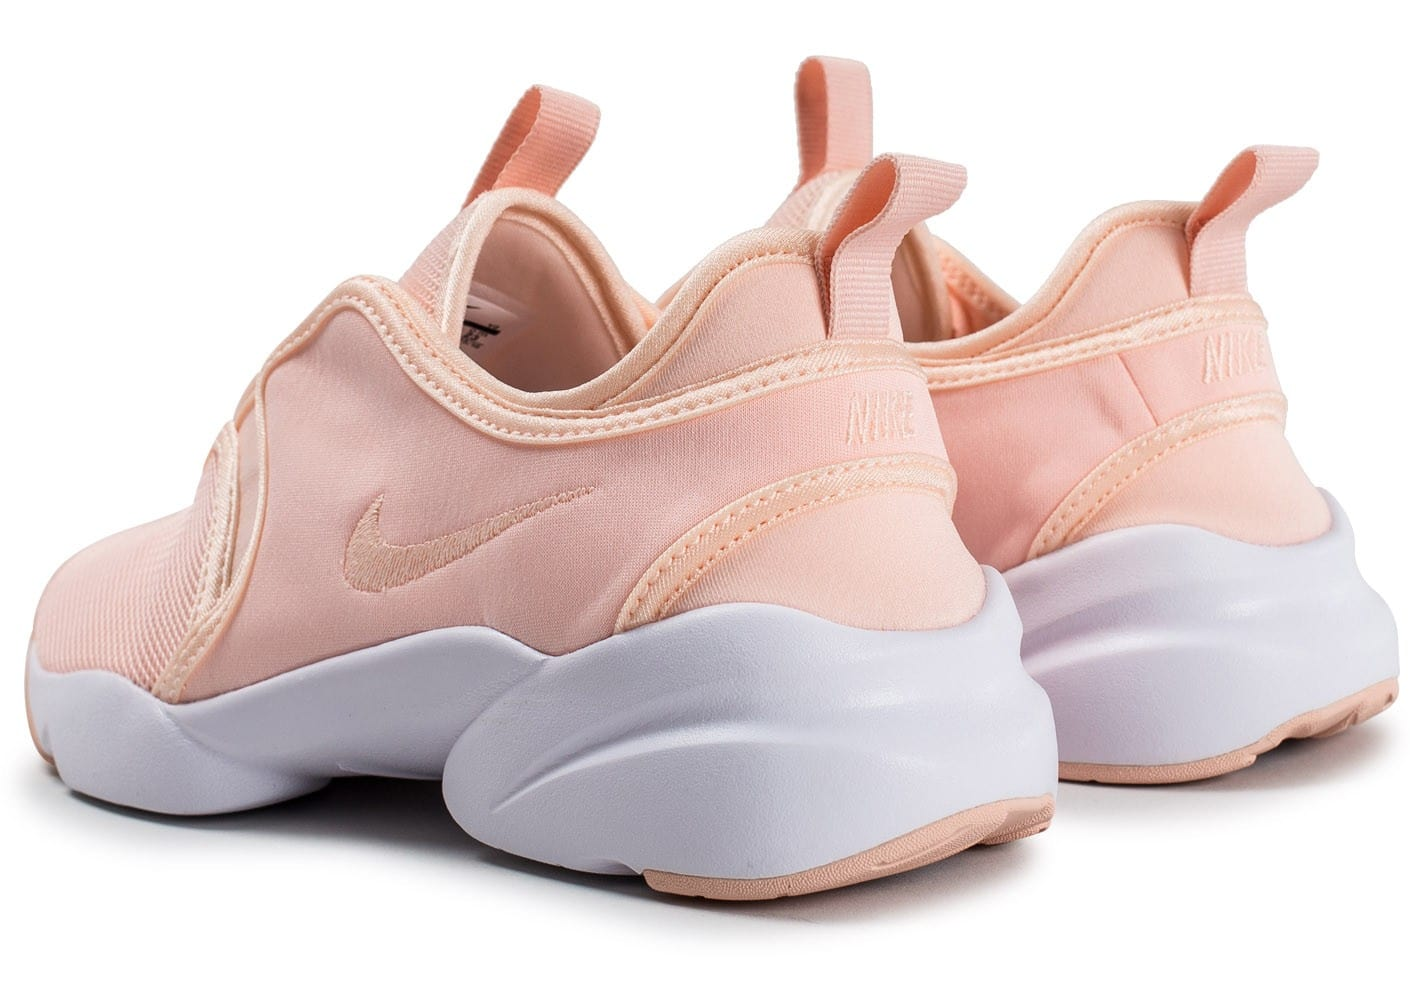 nike loden w rose pale chaussures femme chausport. Black Bedroom Furniture Sets. Home Design Ideas